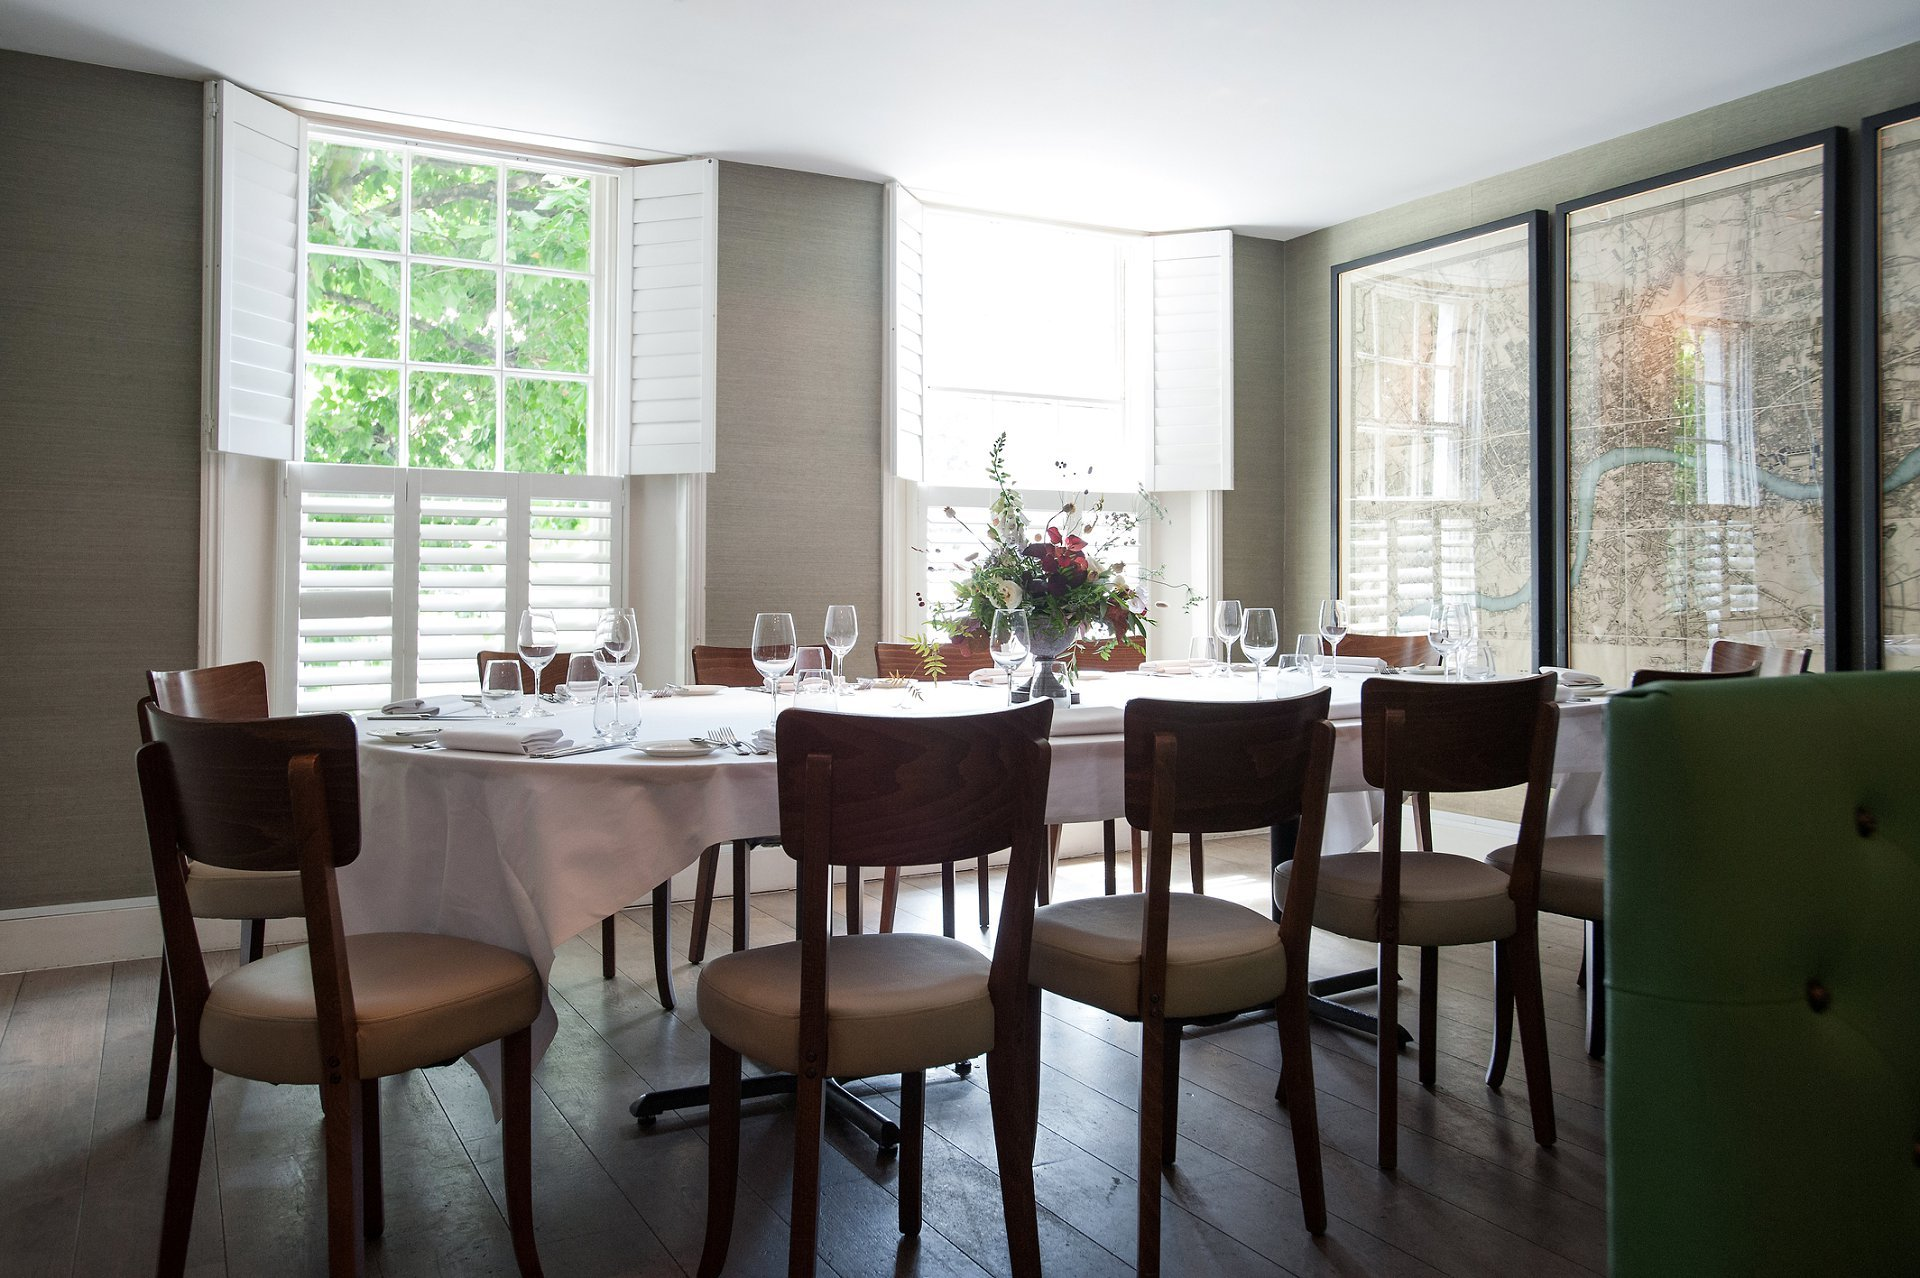 Chelsea Restaurant Medlar - the oval table in the private dining room of this King's Road restaurant laid for a small wedding reception lunch and a party of twelve guests